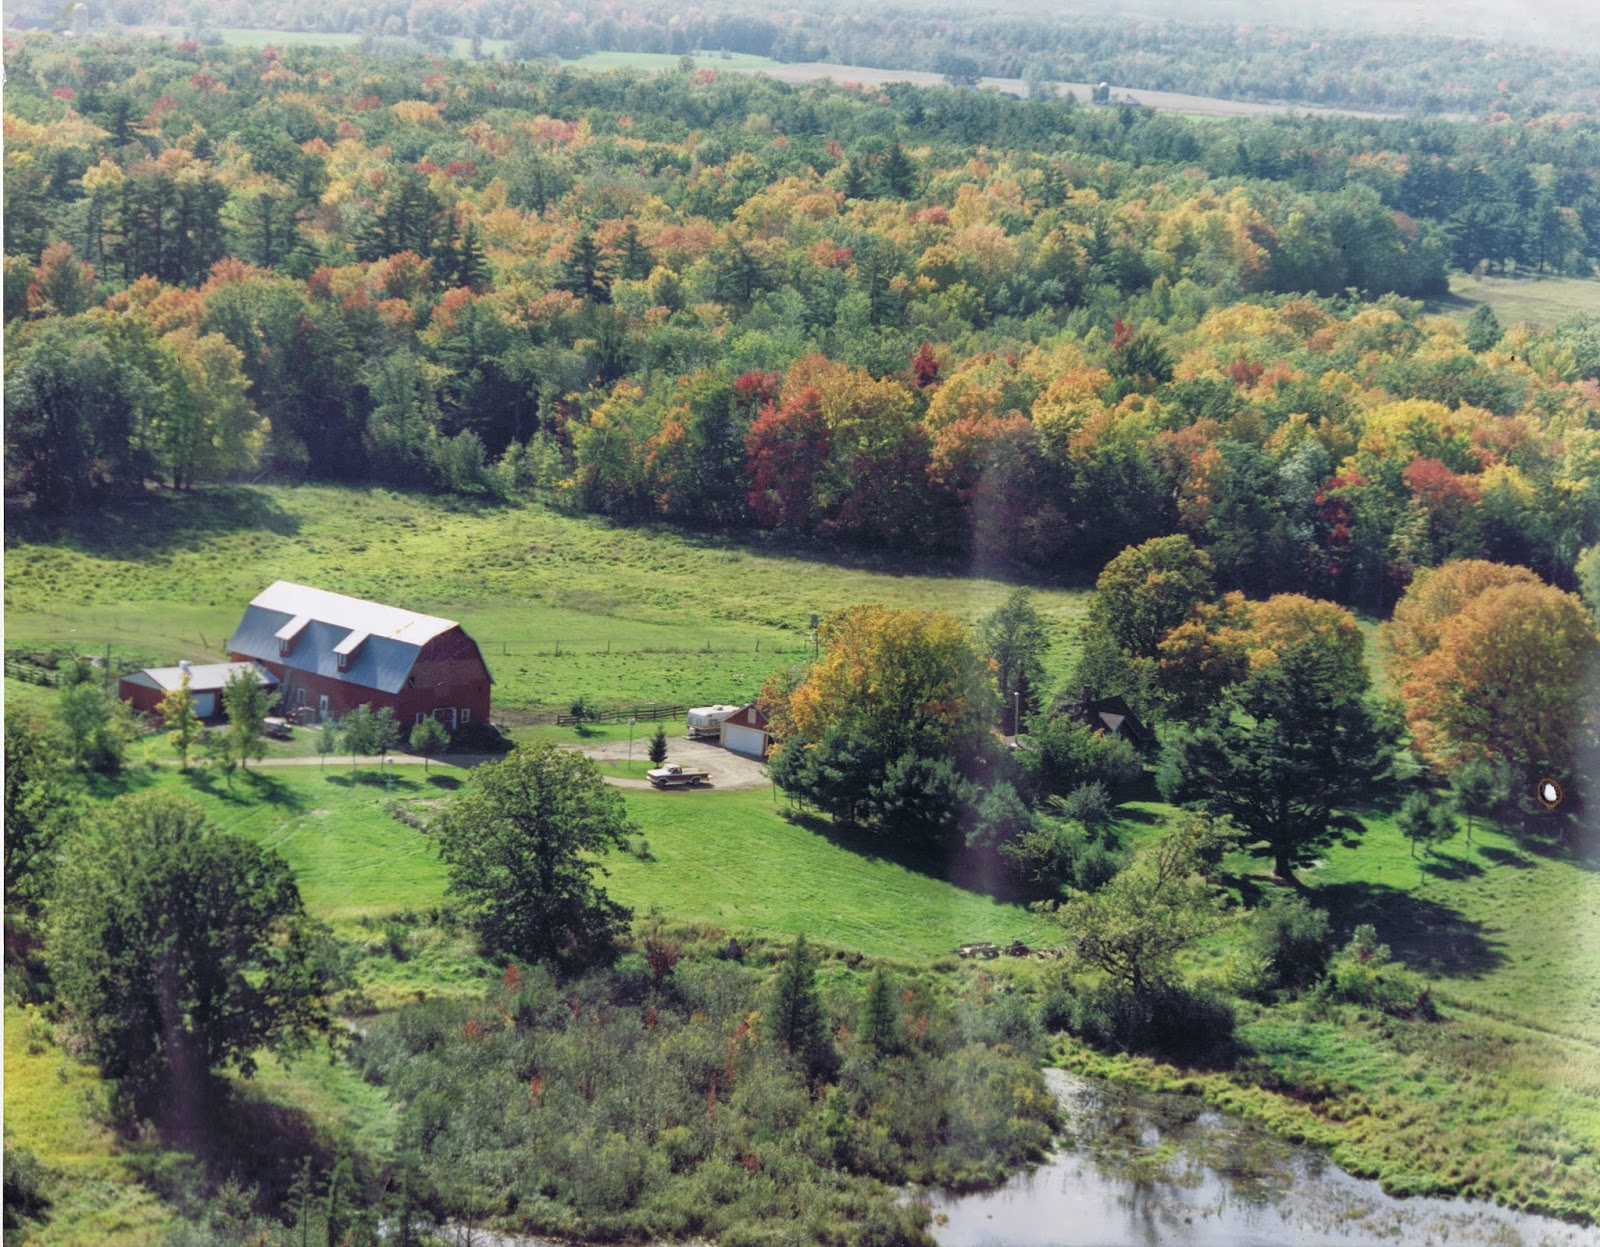 aerial view of Northern Heritage Farm in the mid-1990s